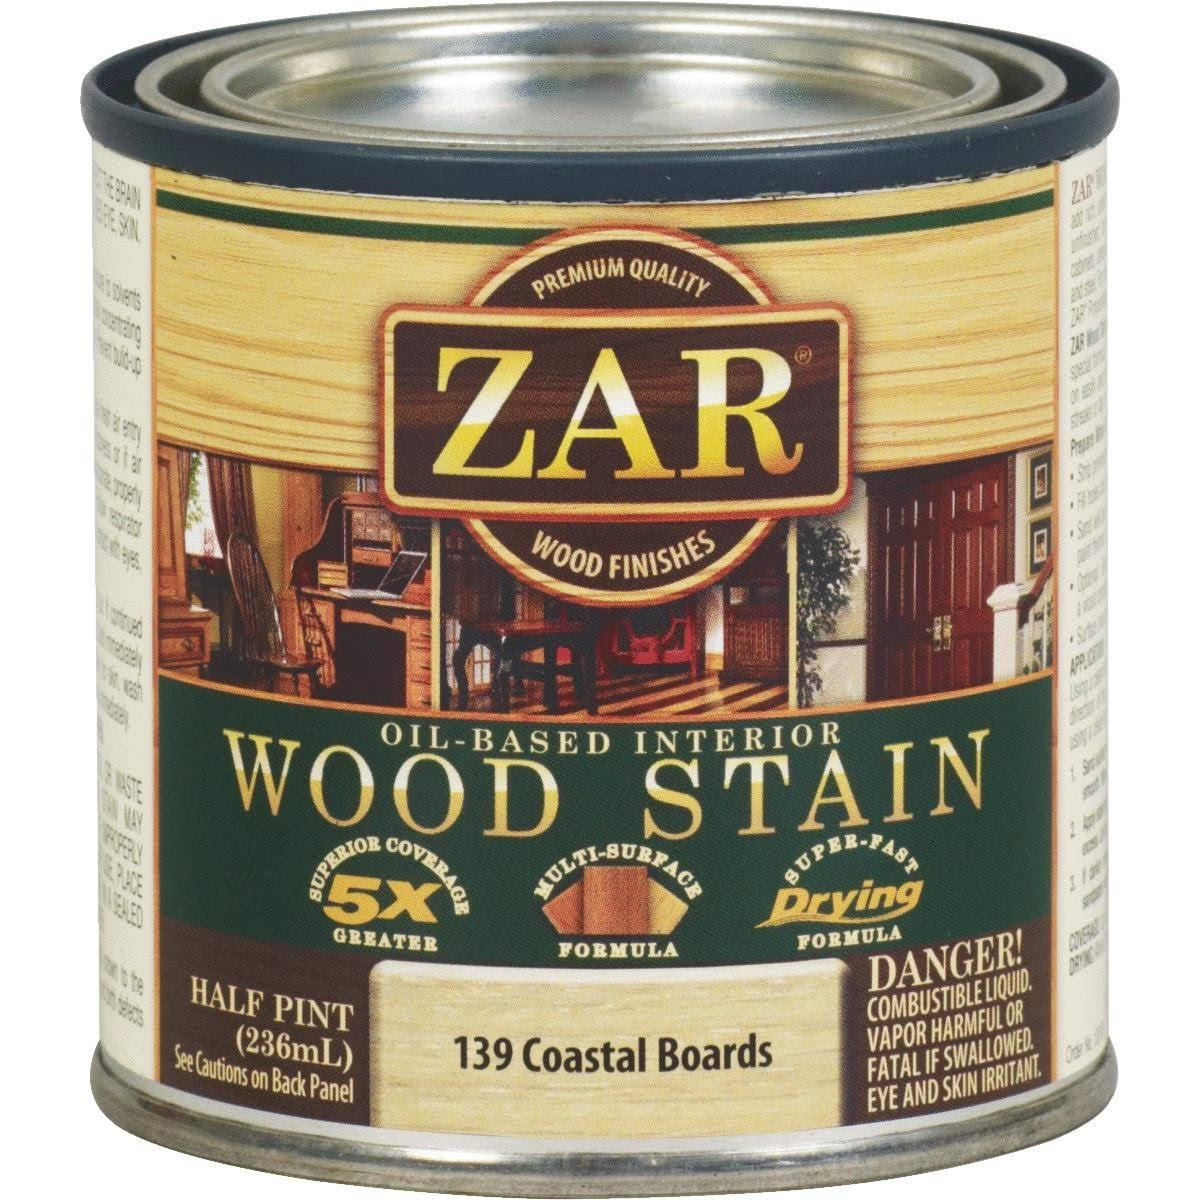 ZAR 13906 Country Coastal Boards Wood Stain - White